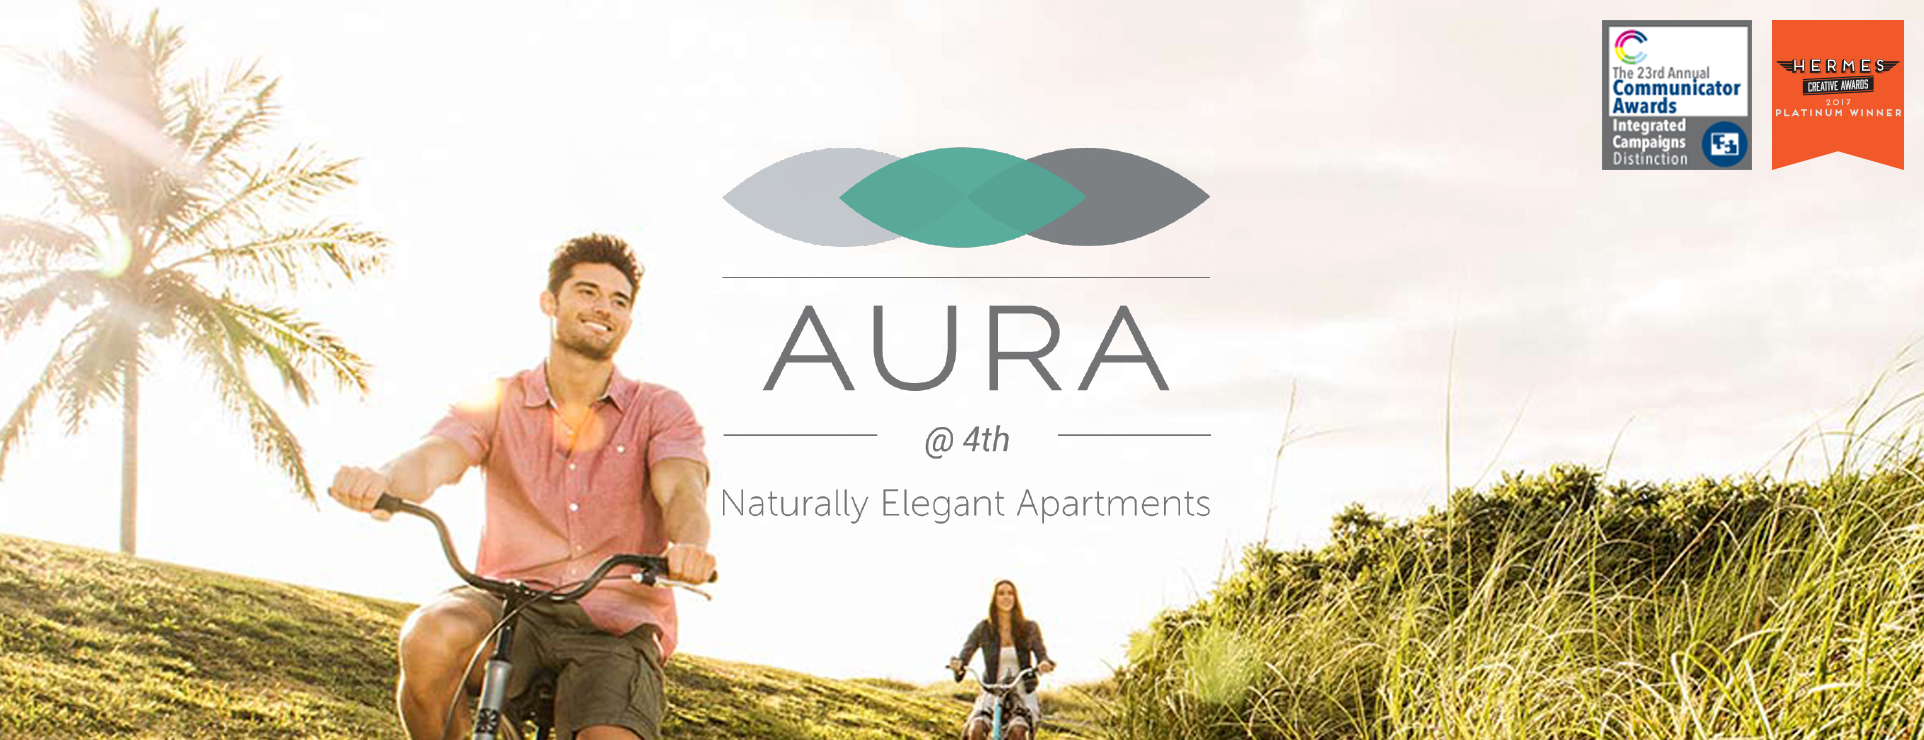 AURA_HeaderImage